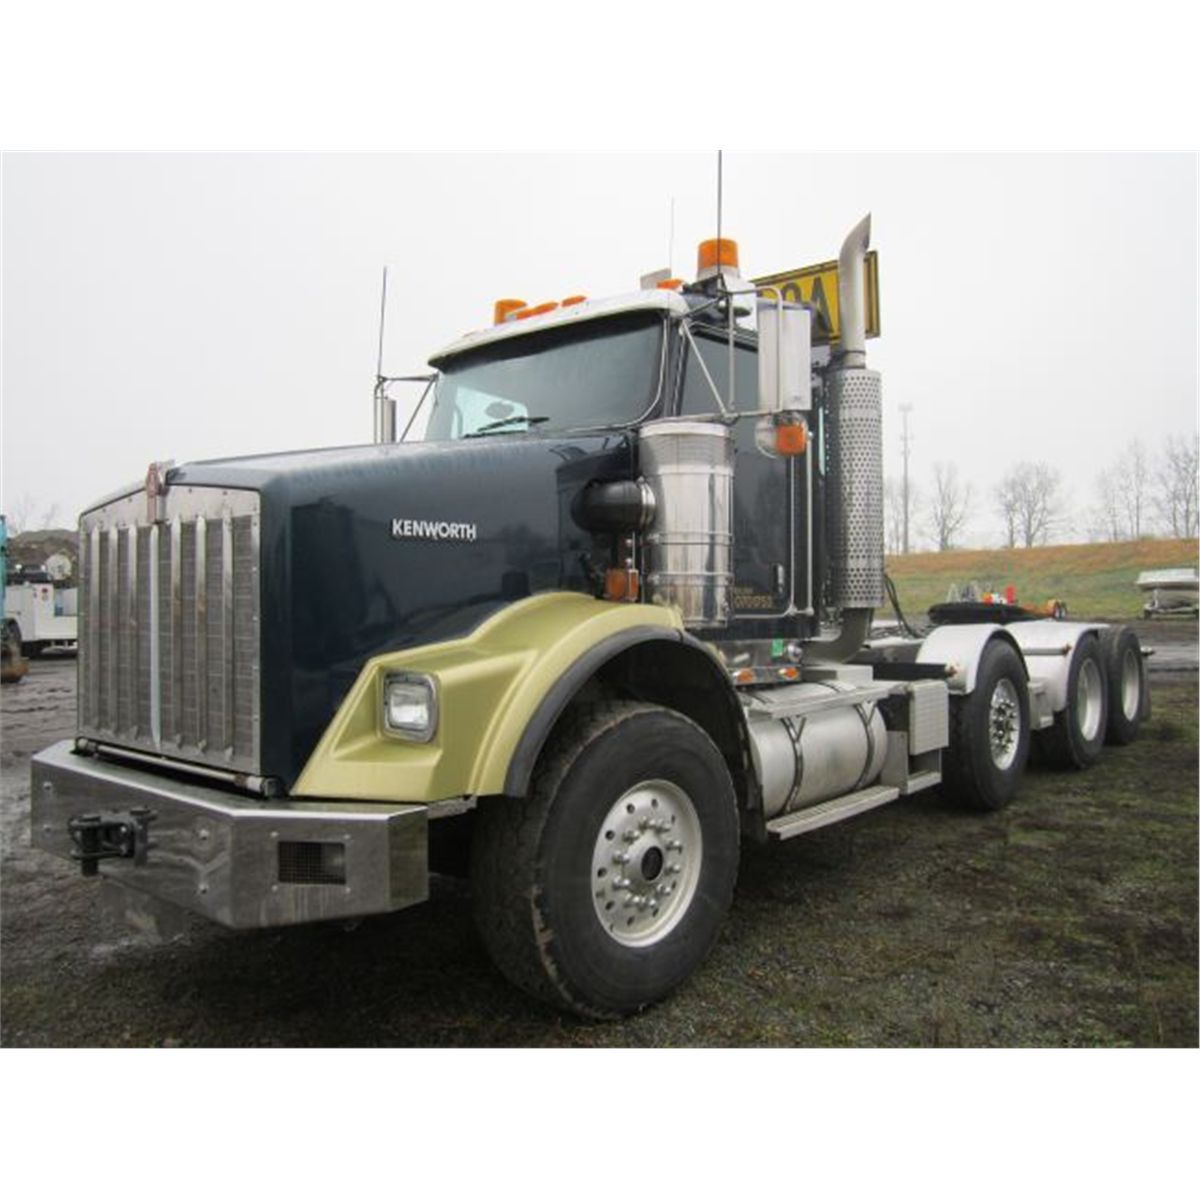 hight resolution of 2007 kenworth t800 heavy haul truck tractor loading zoom